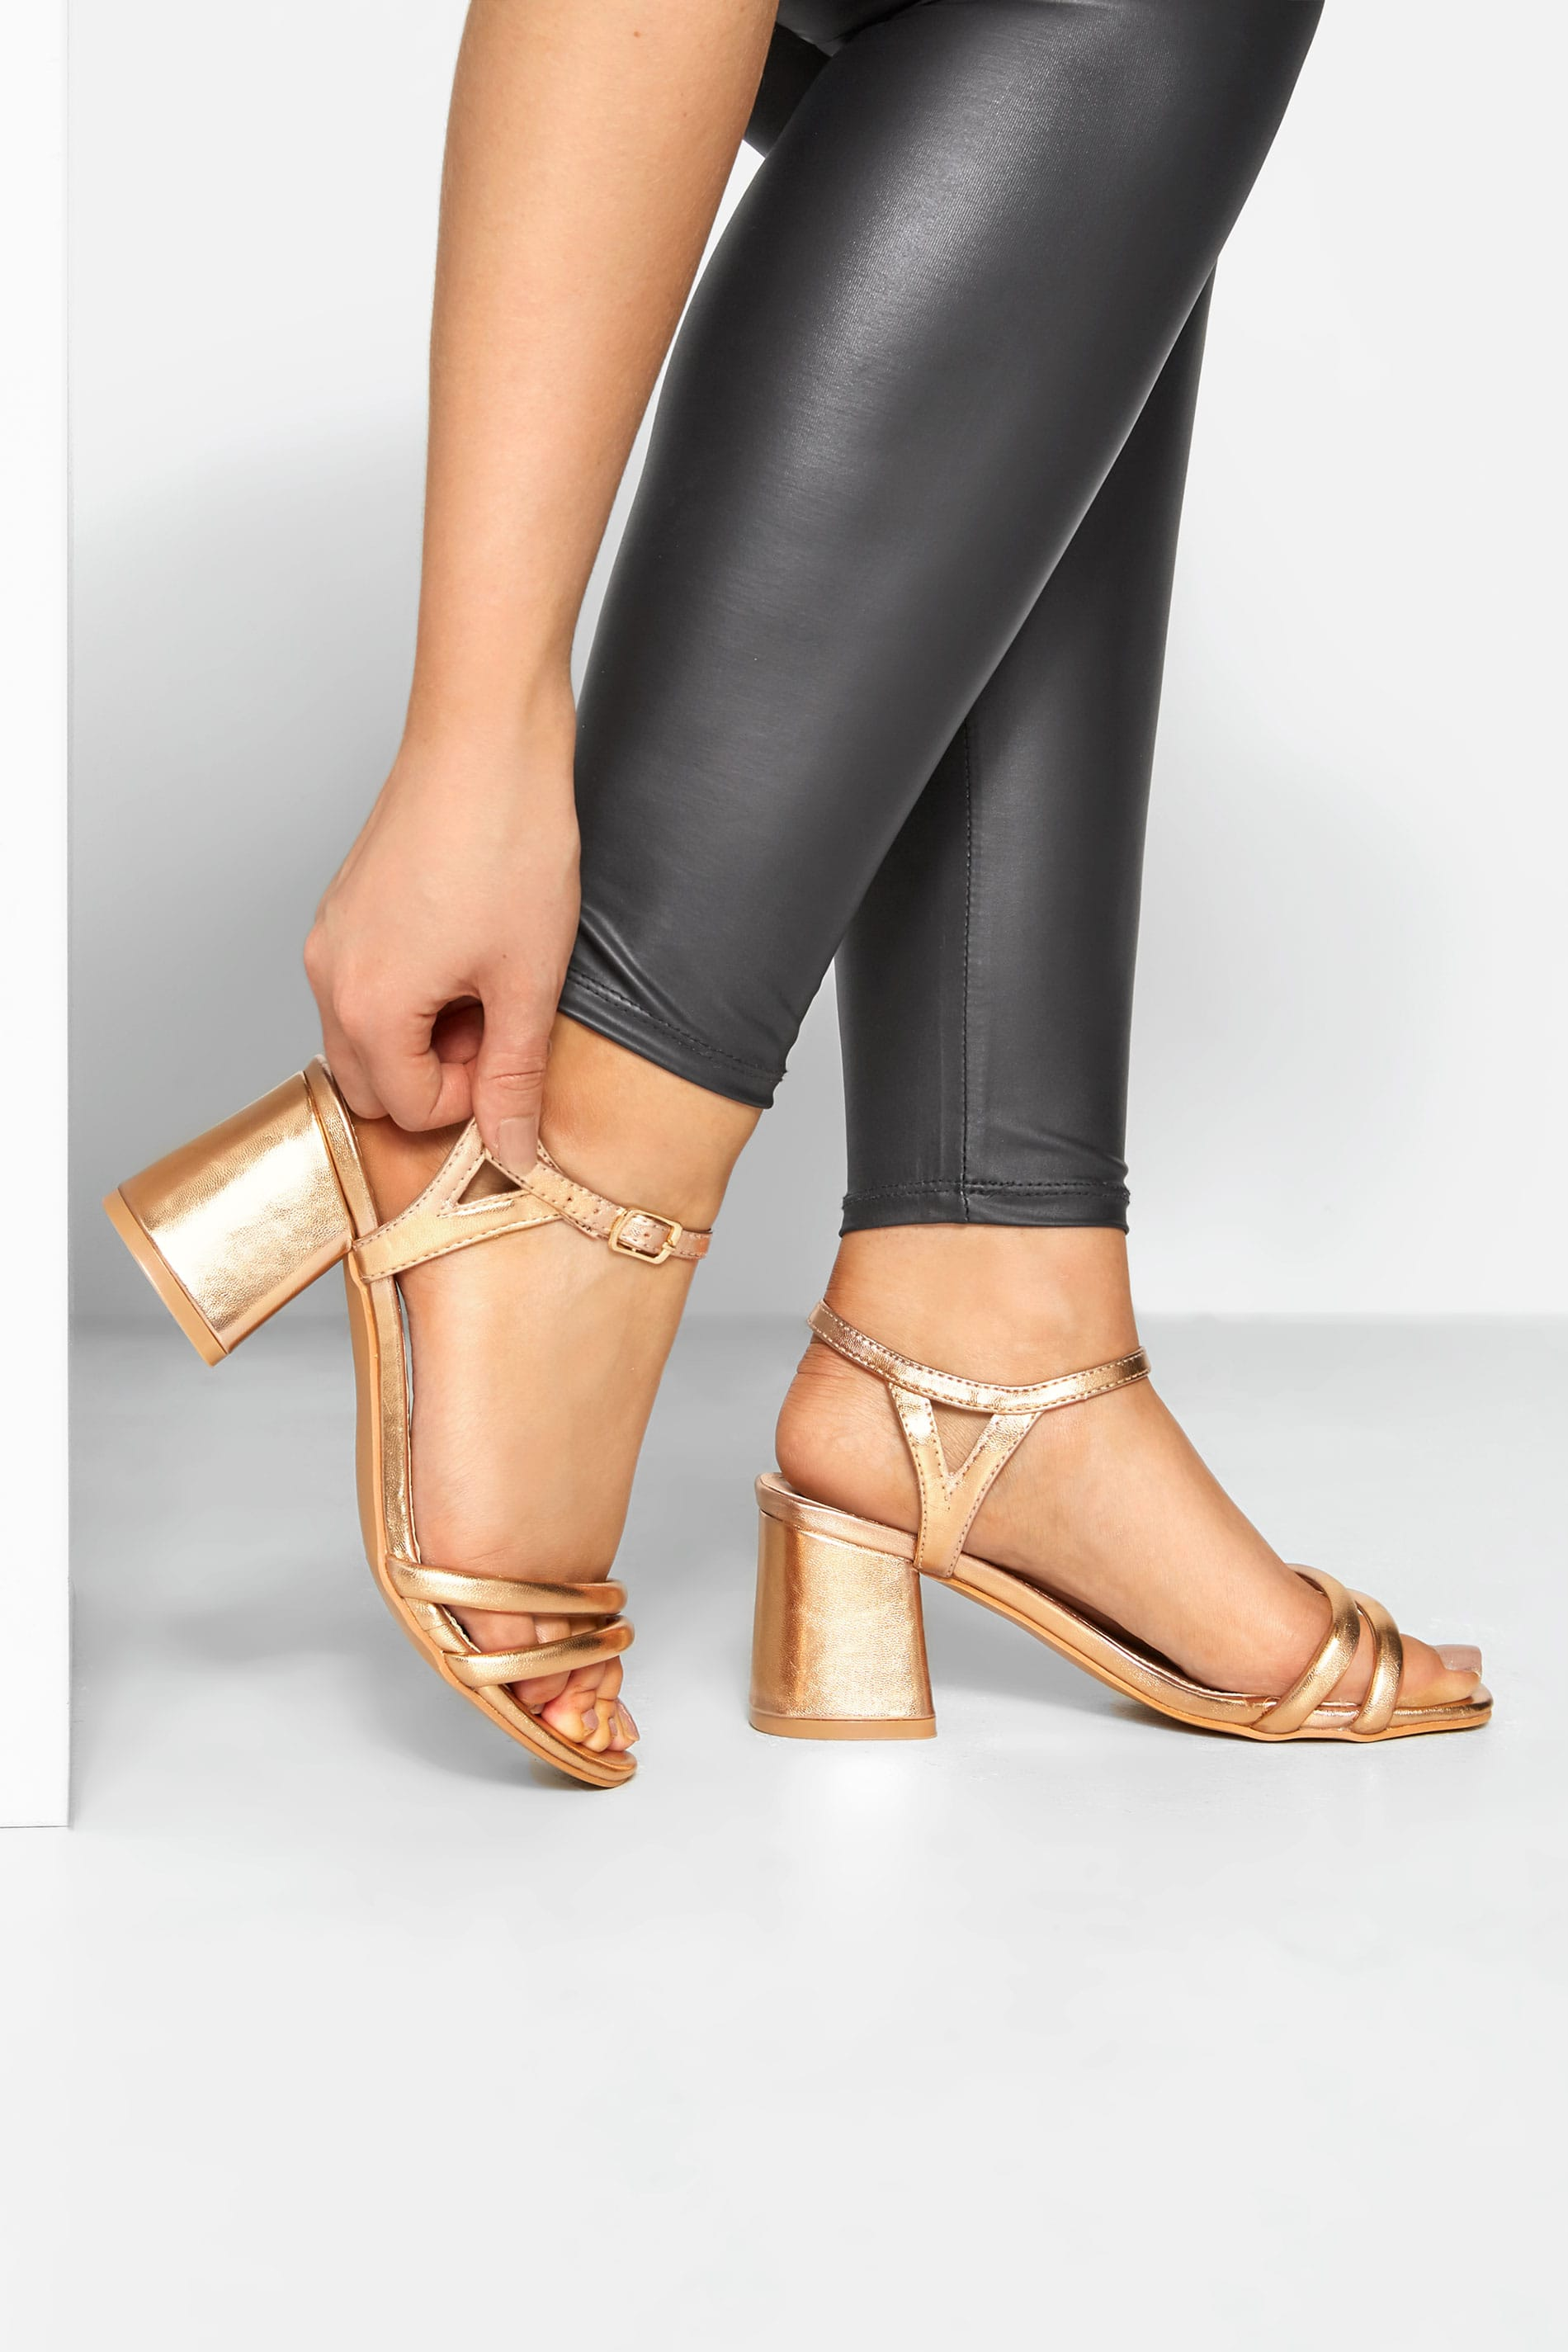 LIMITED COLLECTION Gold Double Strap Heeled Sandals In Extra Wide Fit